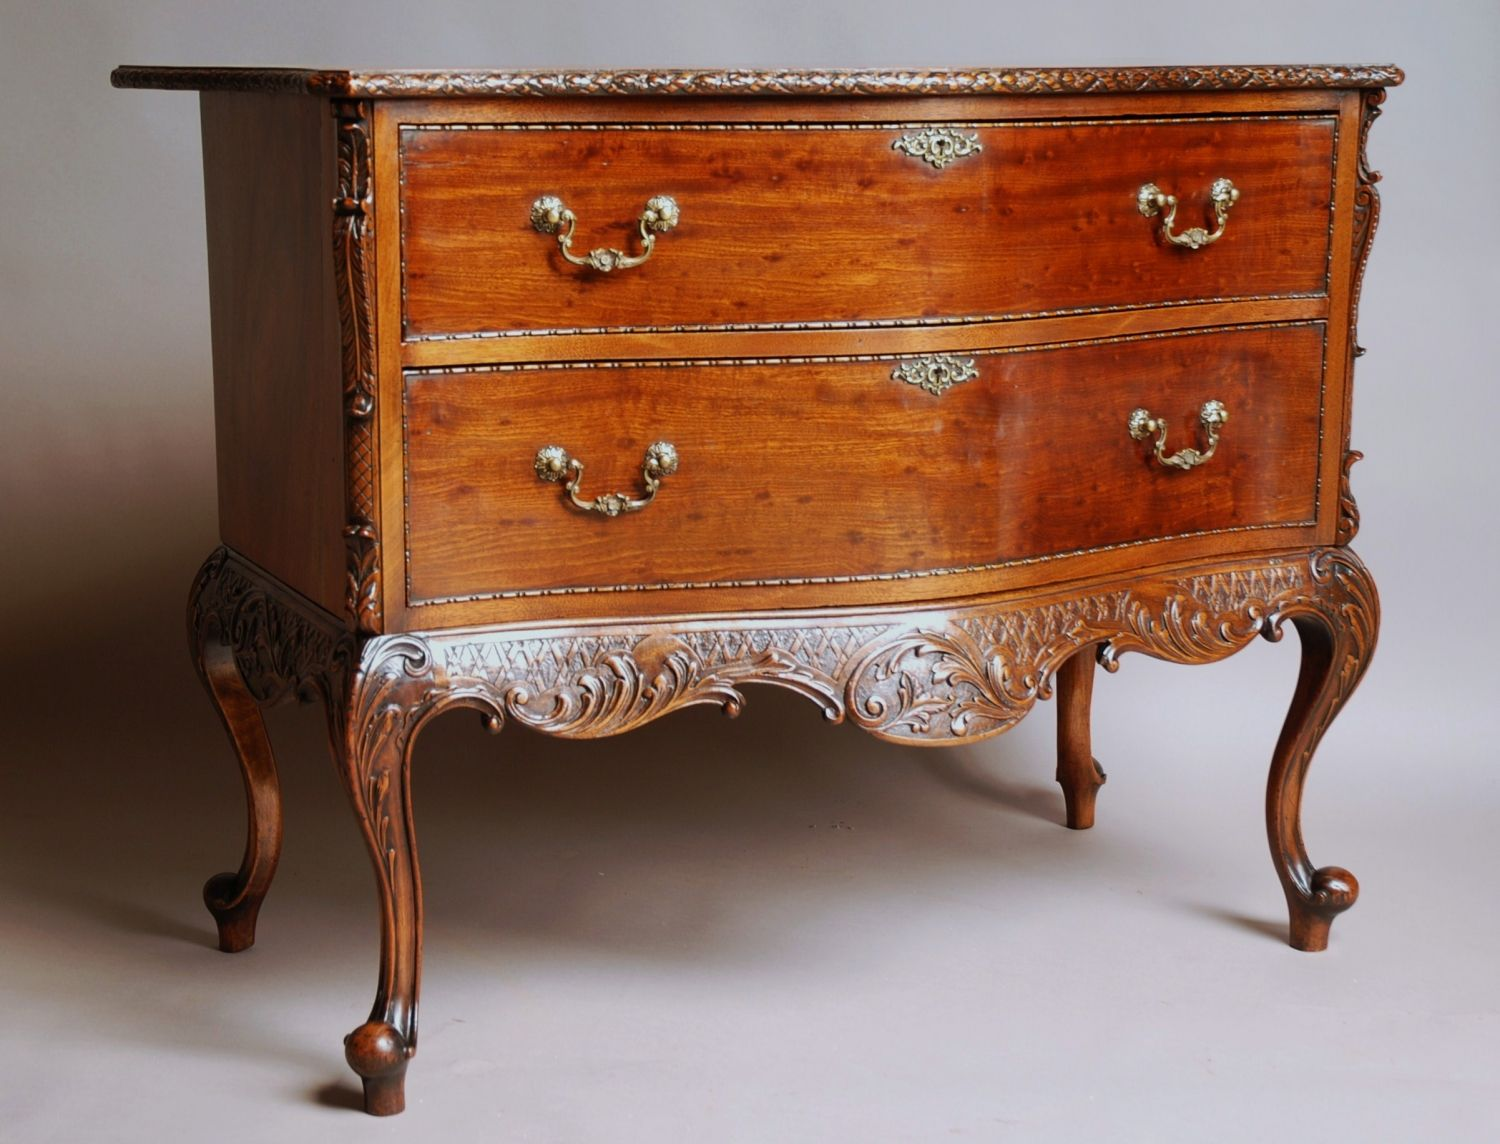 wooden-chippendale-furniture-with-drawers.jpg